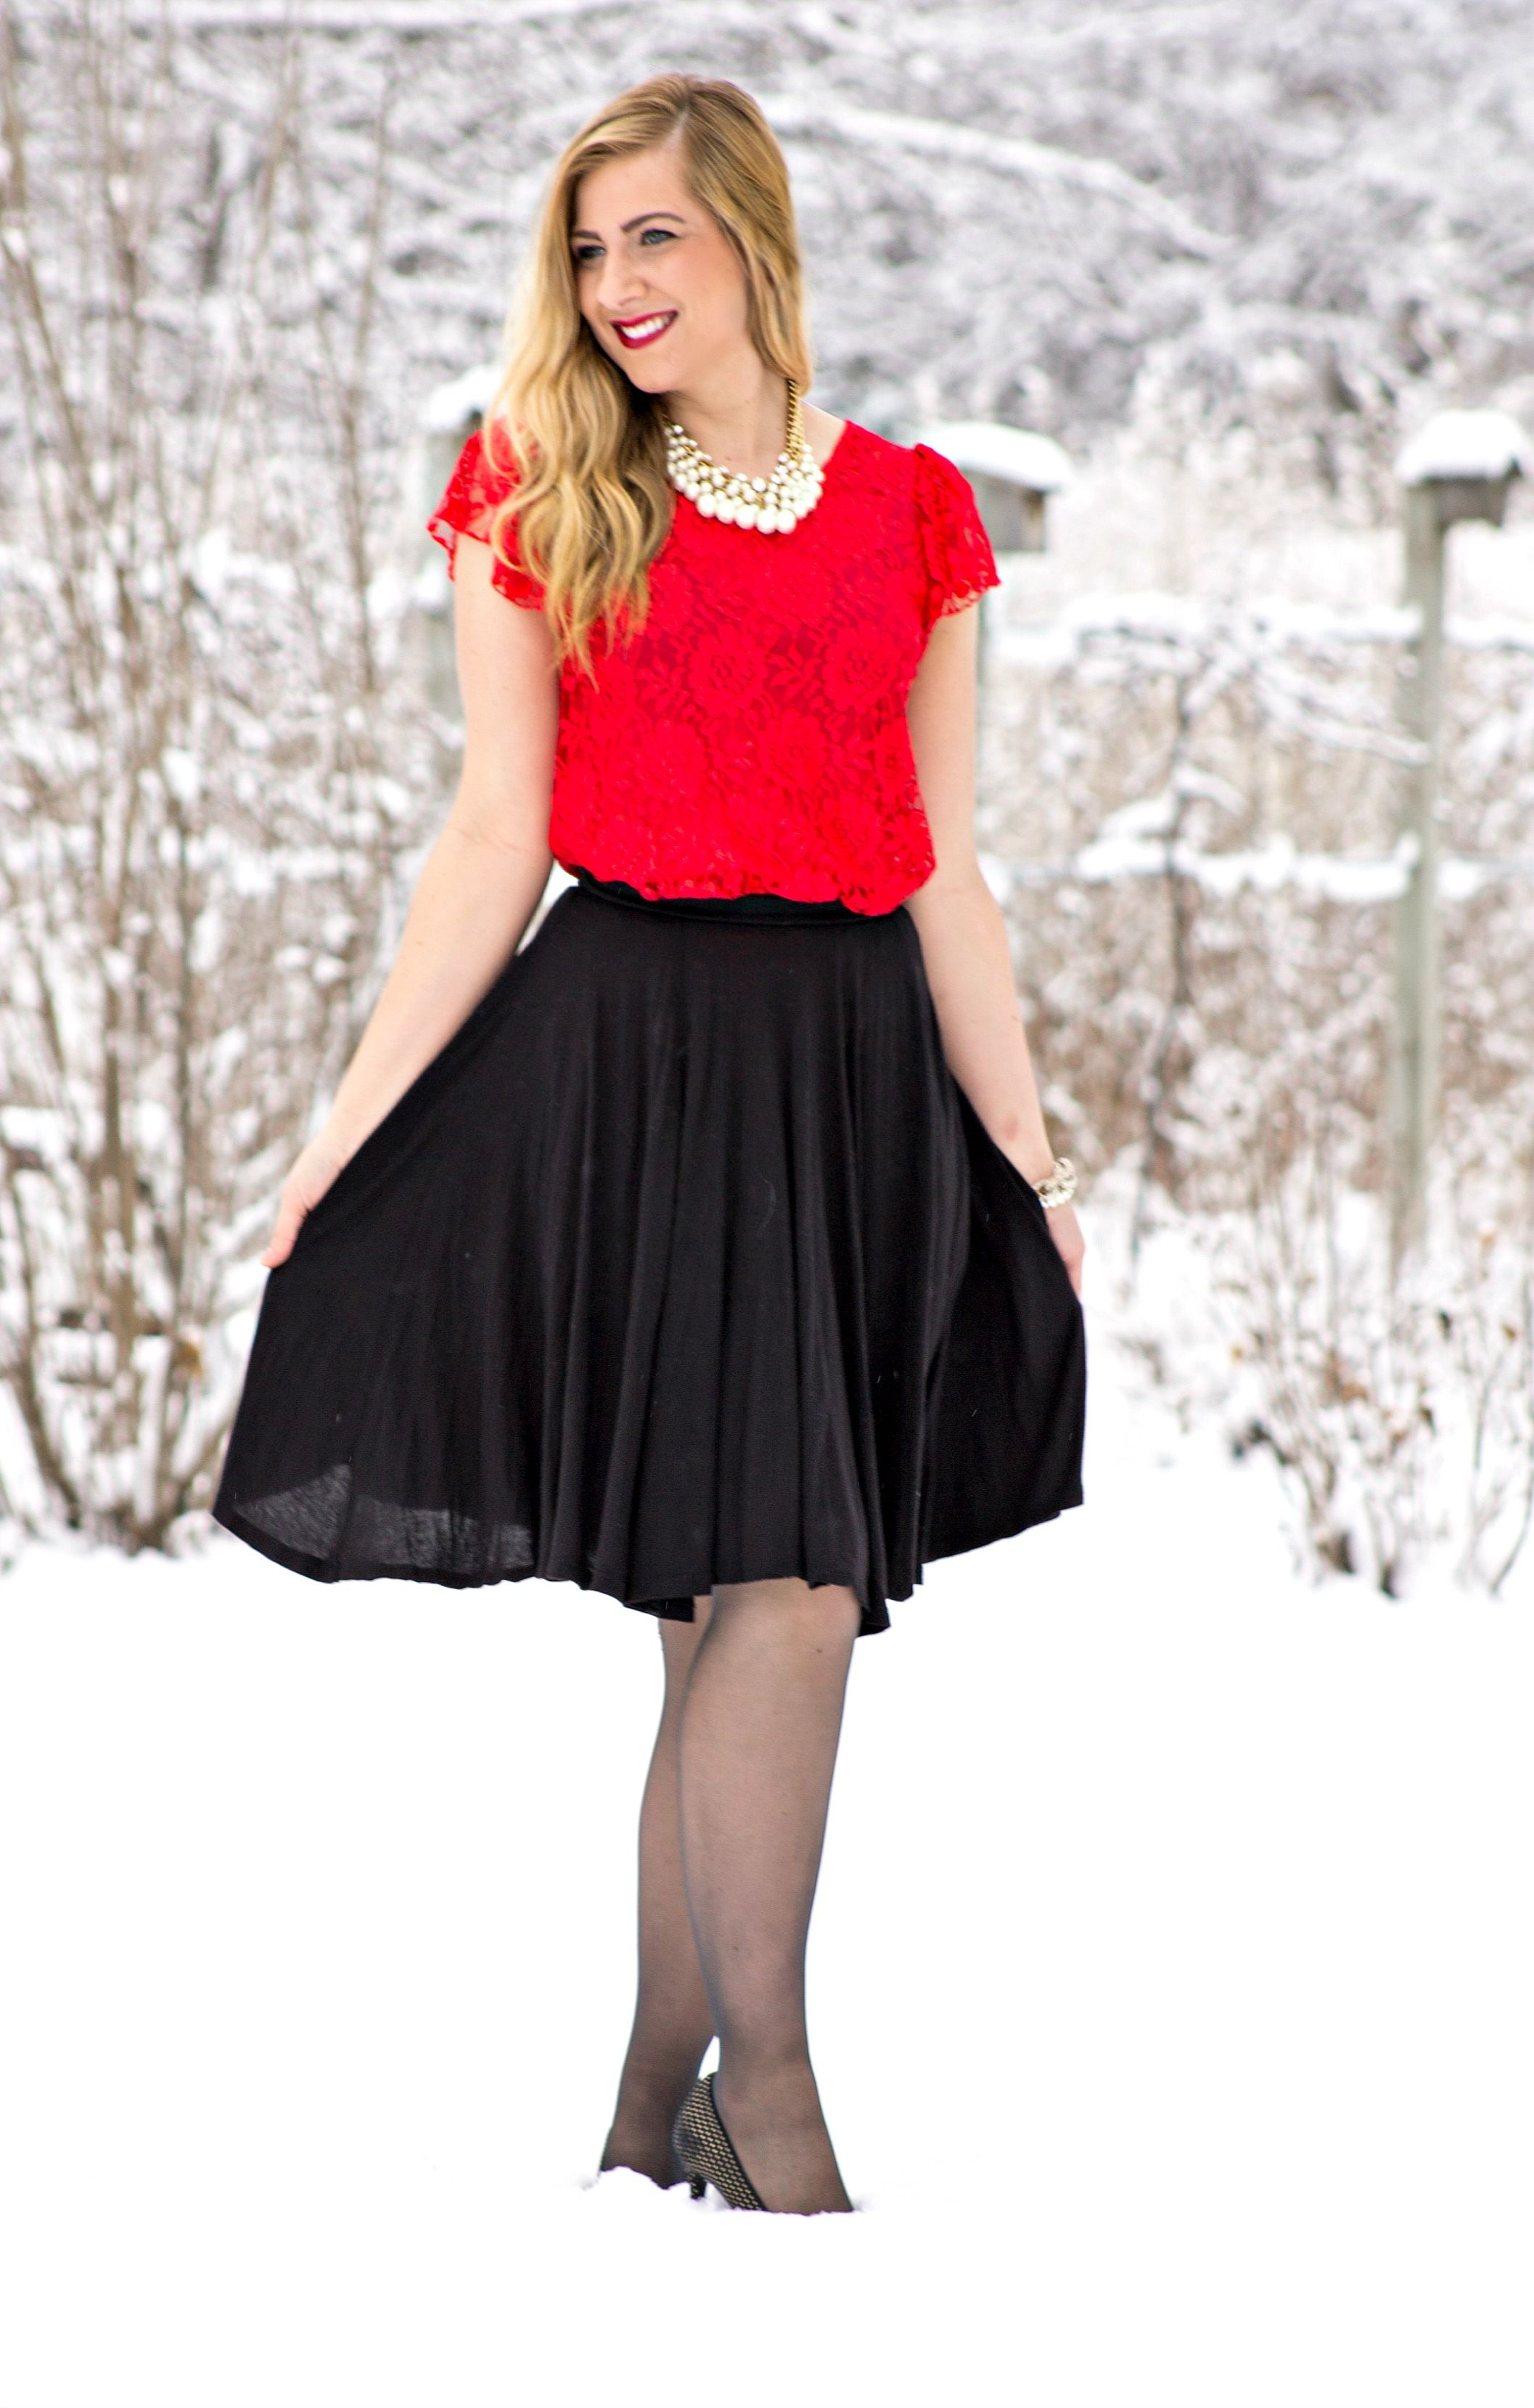 46781eceb3b7 Red Lace Top + Black Skirt + Pearl Necklace | My Style - Rachel's ...